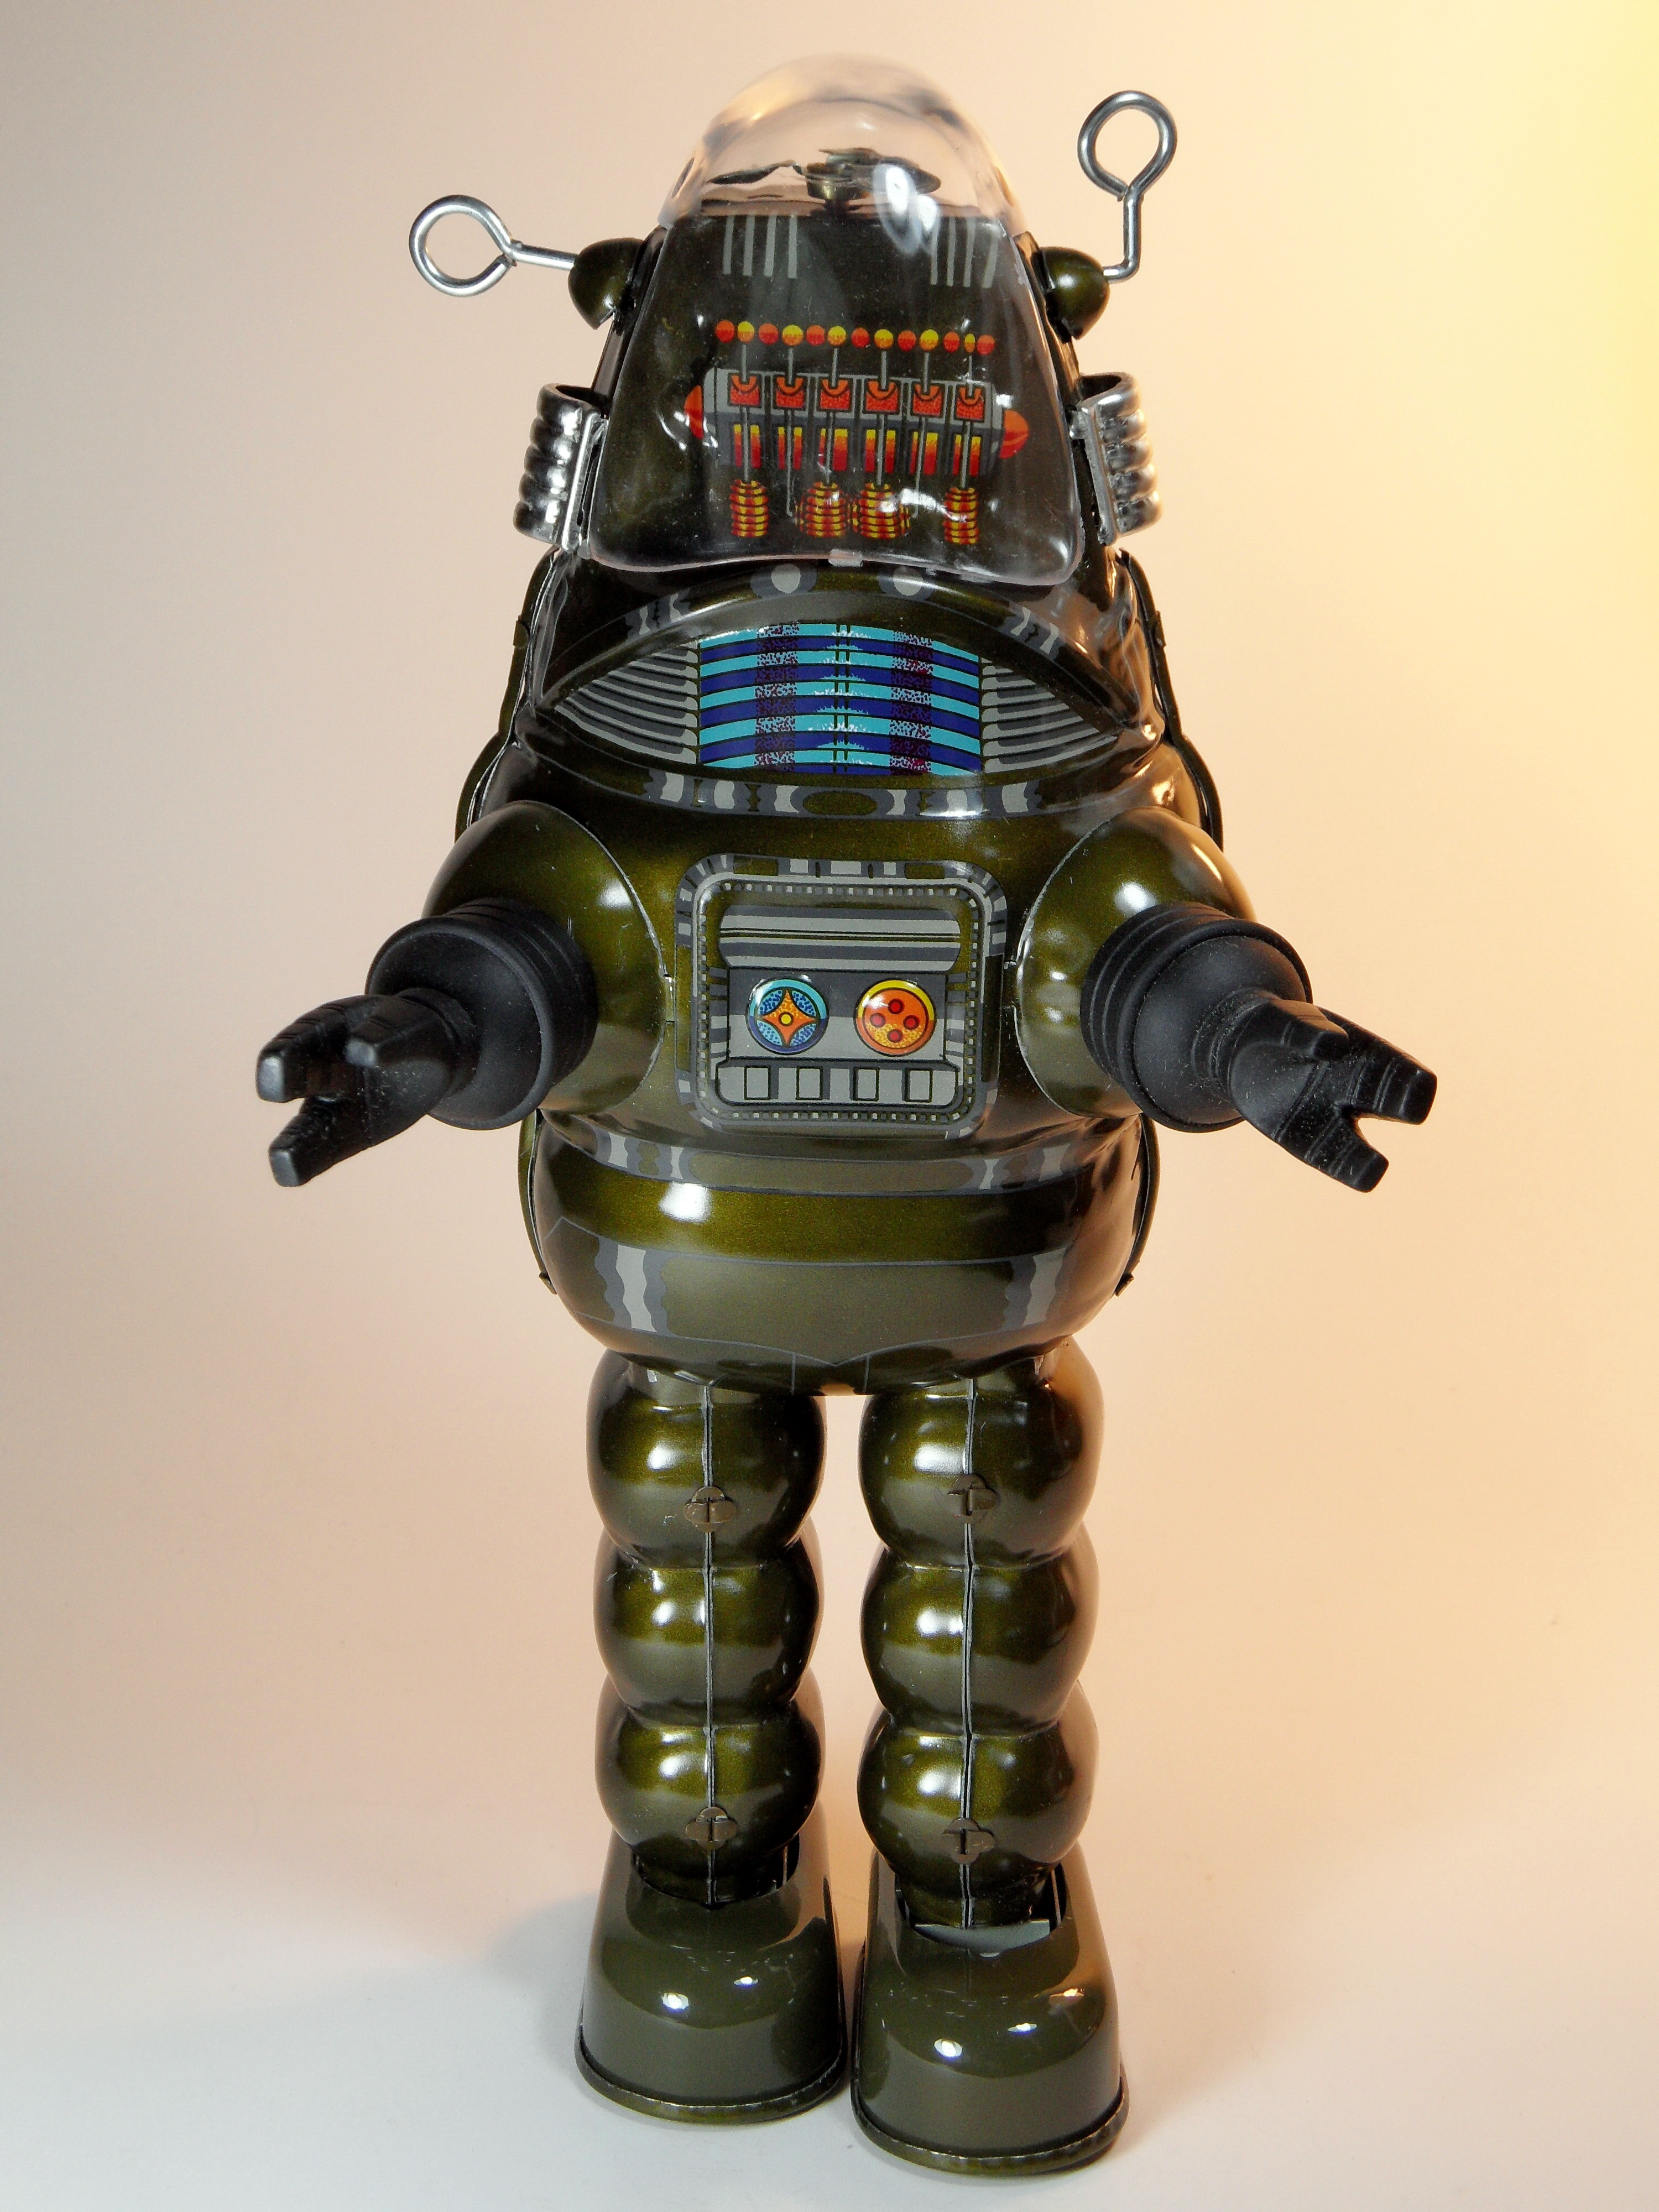 toy guns with File Billiken Shokai Tin Wind Up Robby The Robot With Disintegrator Ray Gun Olive Green Version Front on 2254 Bala Mp 40 Submachine together with Basics Hamster Care likewise Watch further Toy further Product.